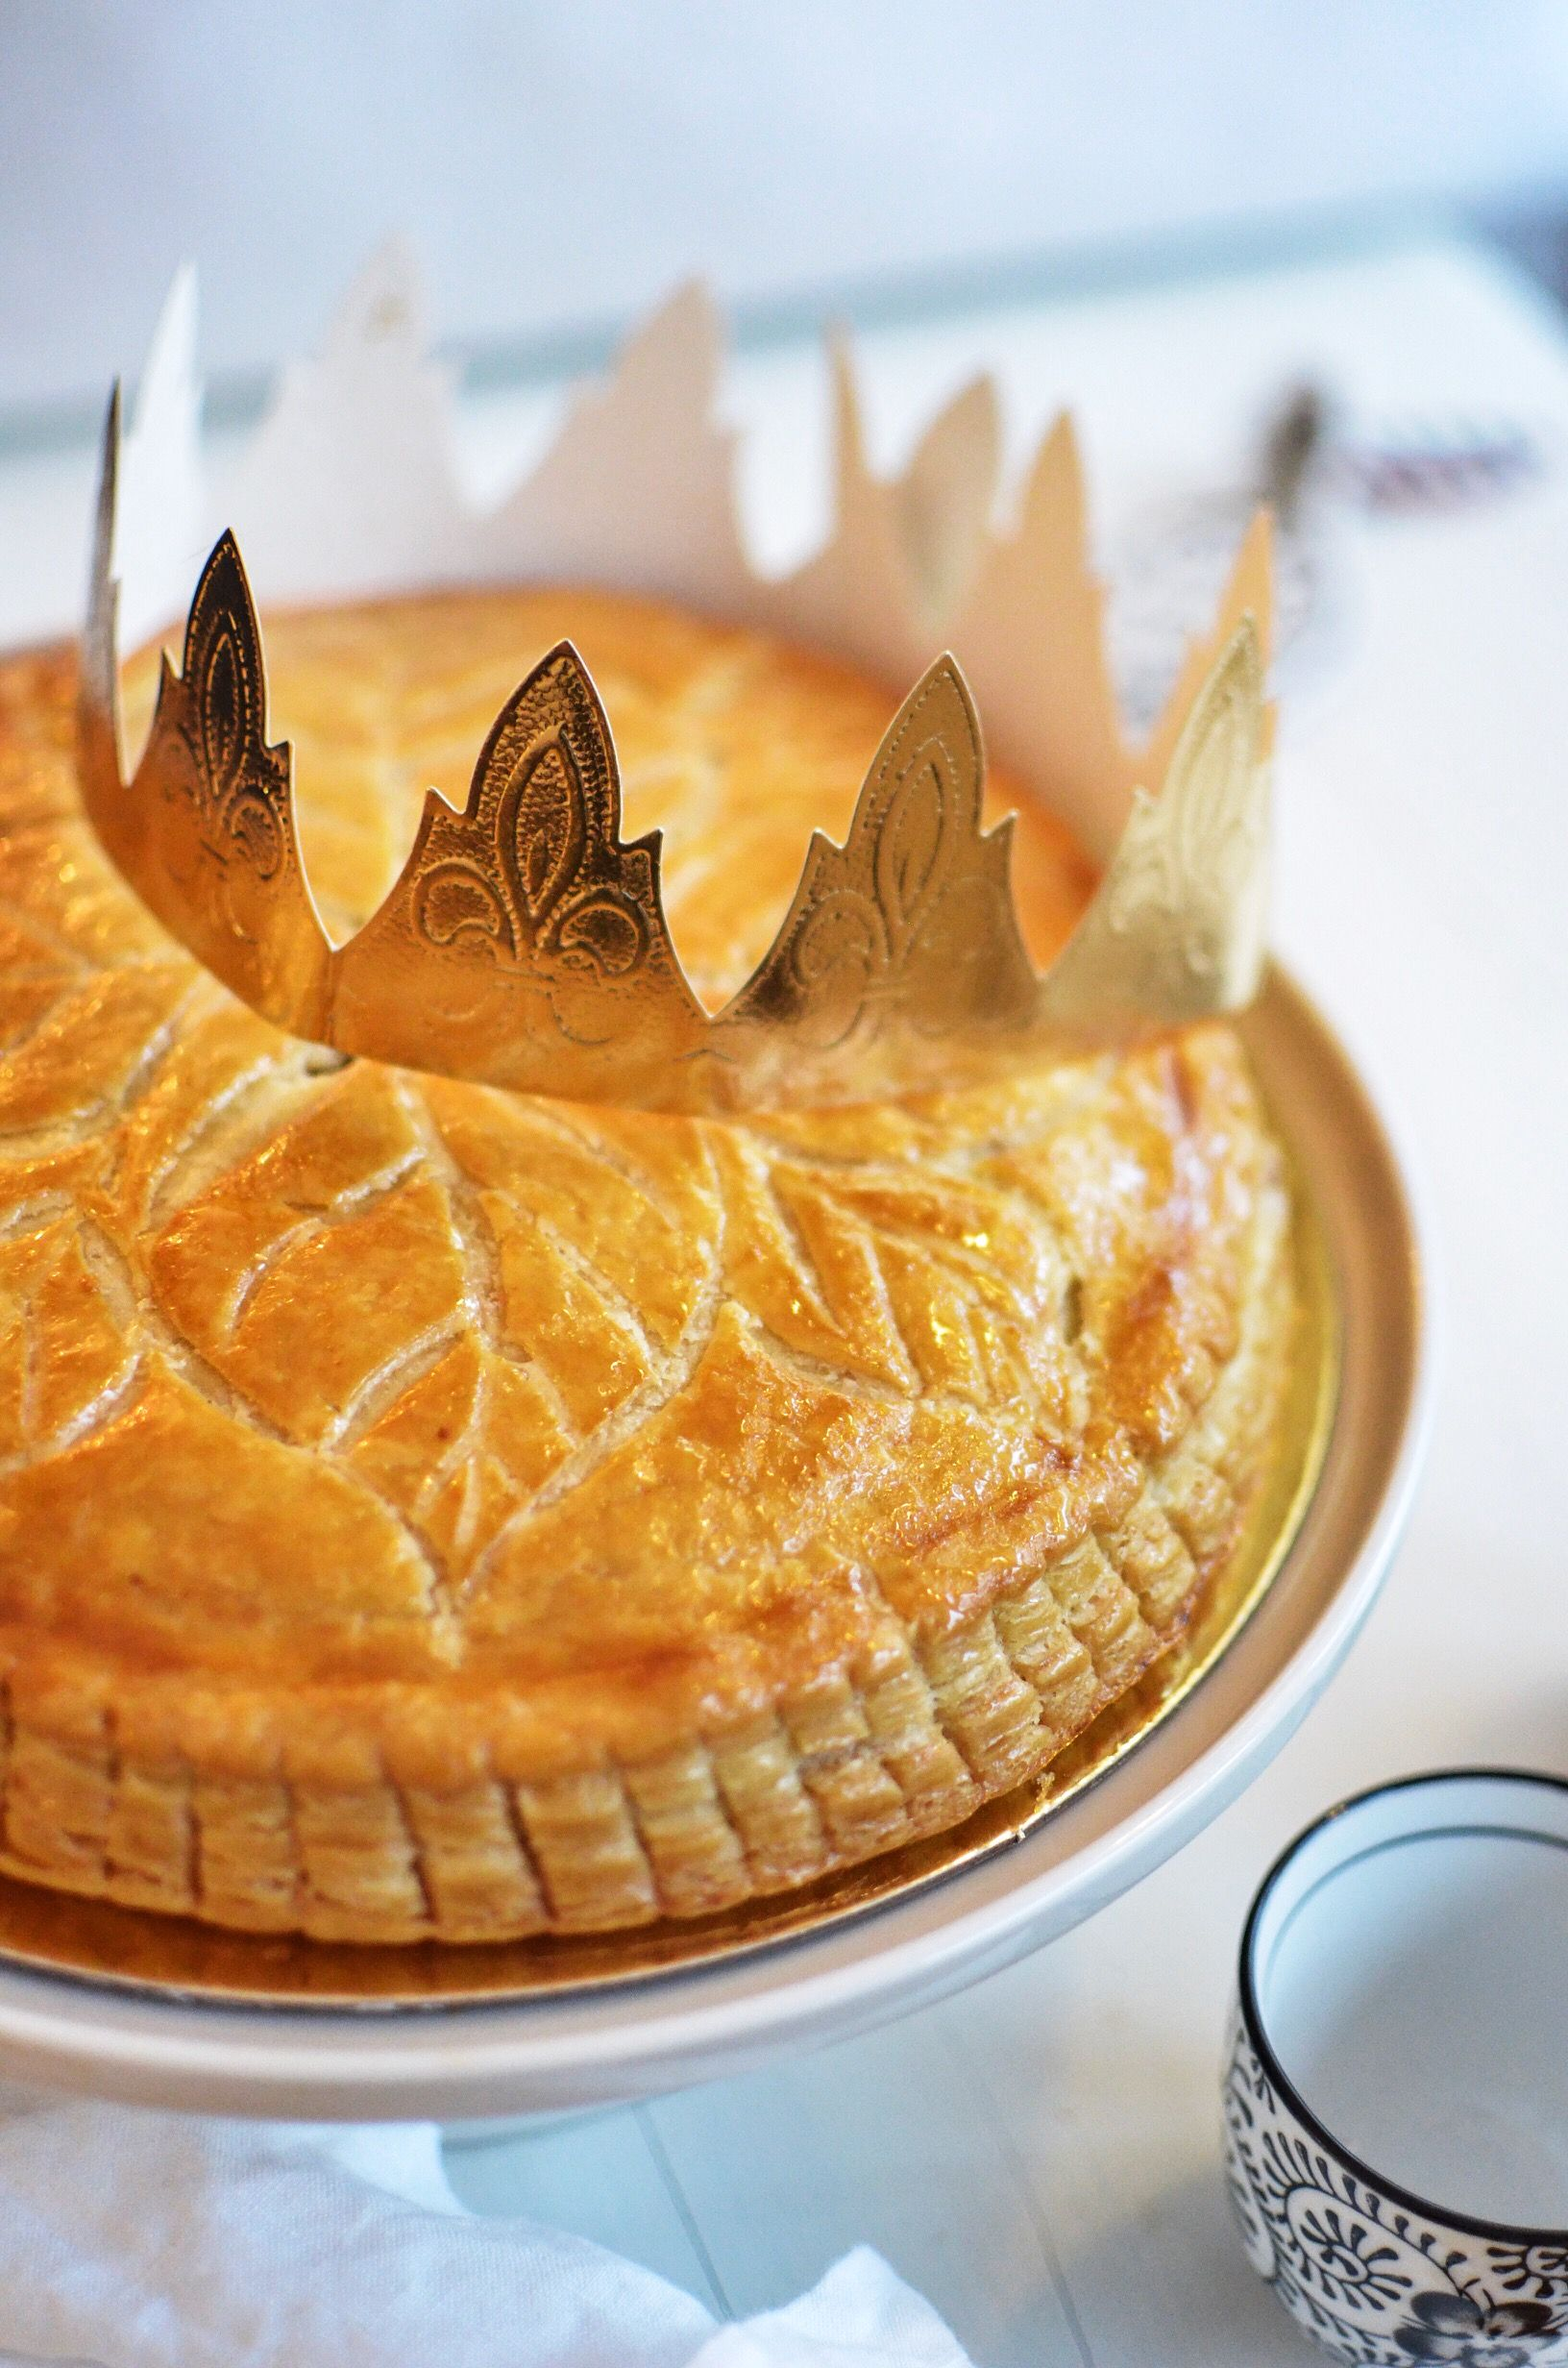 Galette des rois or french epiphany cake recipe food